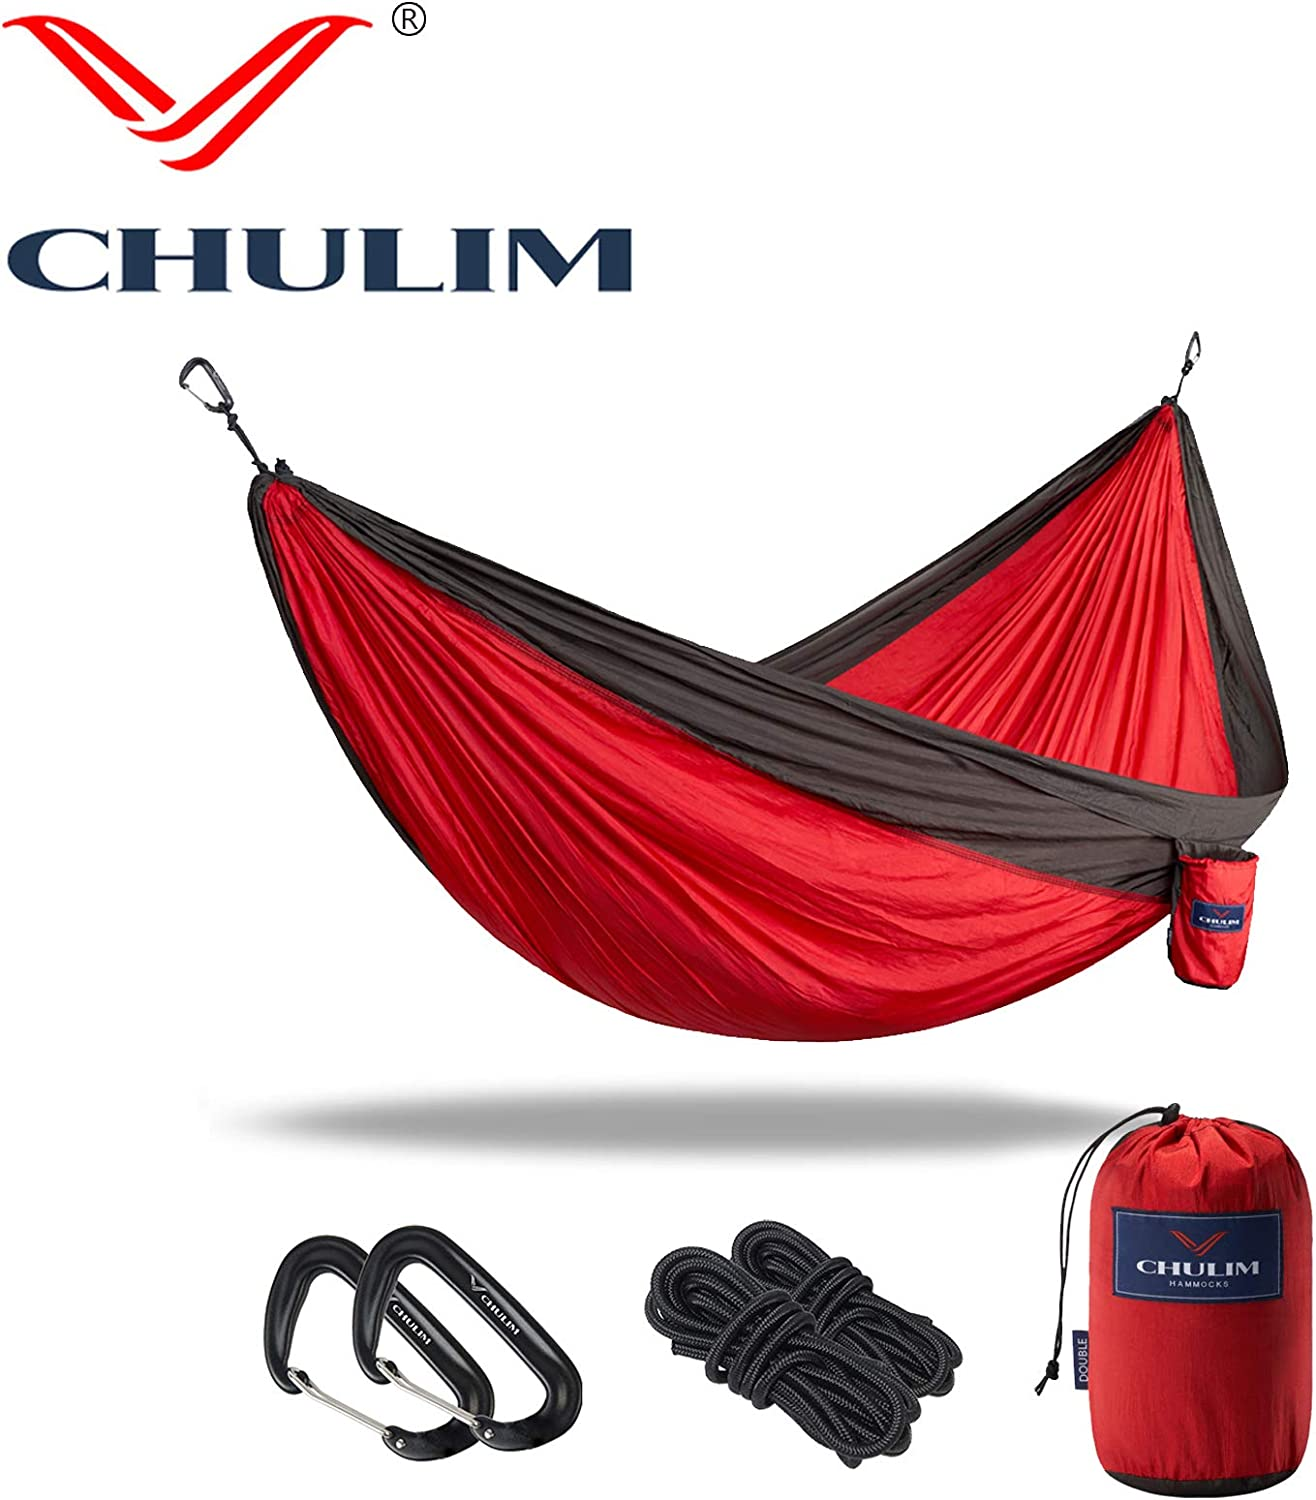 CHULIM Double Camping Hammock with Tree Hanging Kit and 12kn Aluminum Wiregate Carabiner. 118 L x 78 W,Lightweight Portable Camping Gear.Parachute Nylon Hammock for Camping,Travel,Backpacking,Beach.